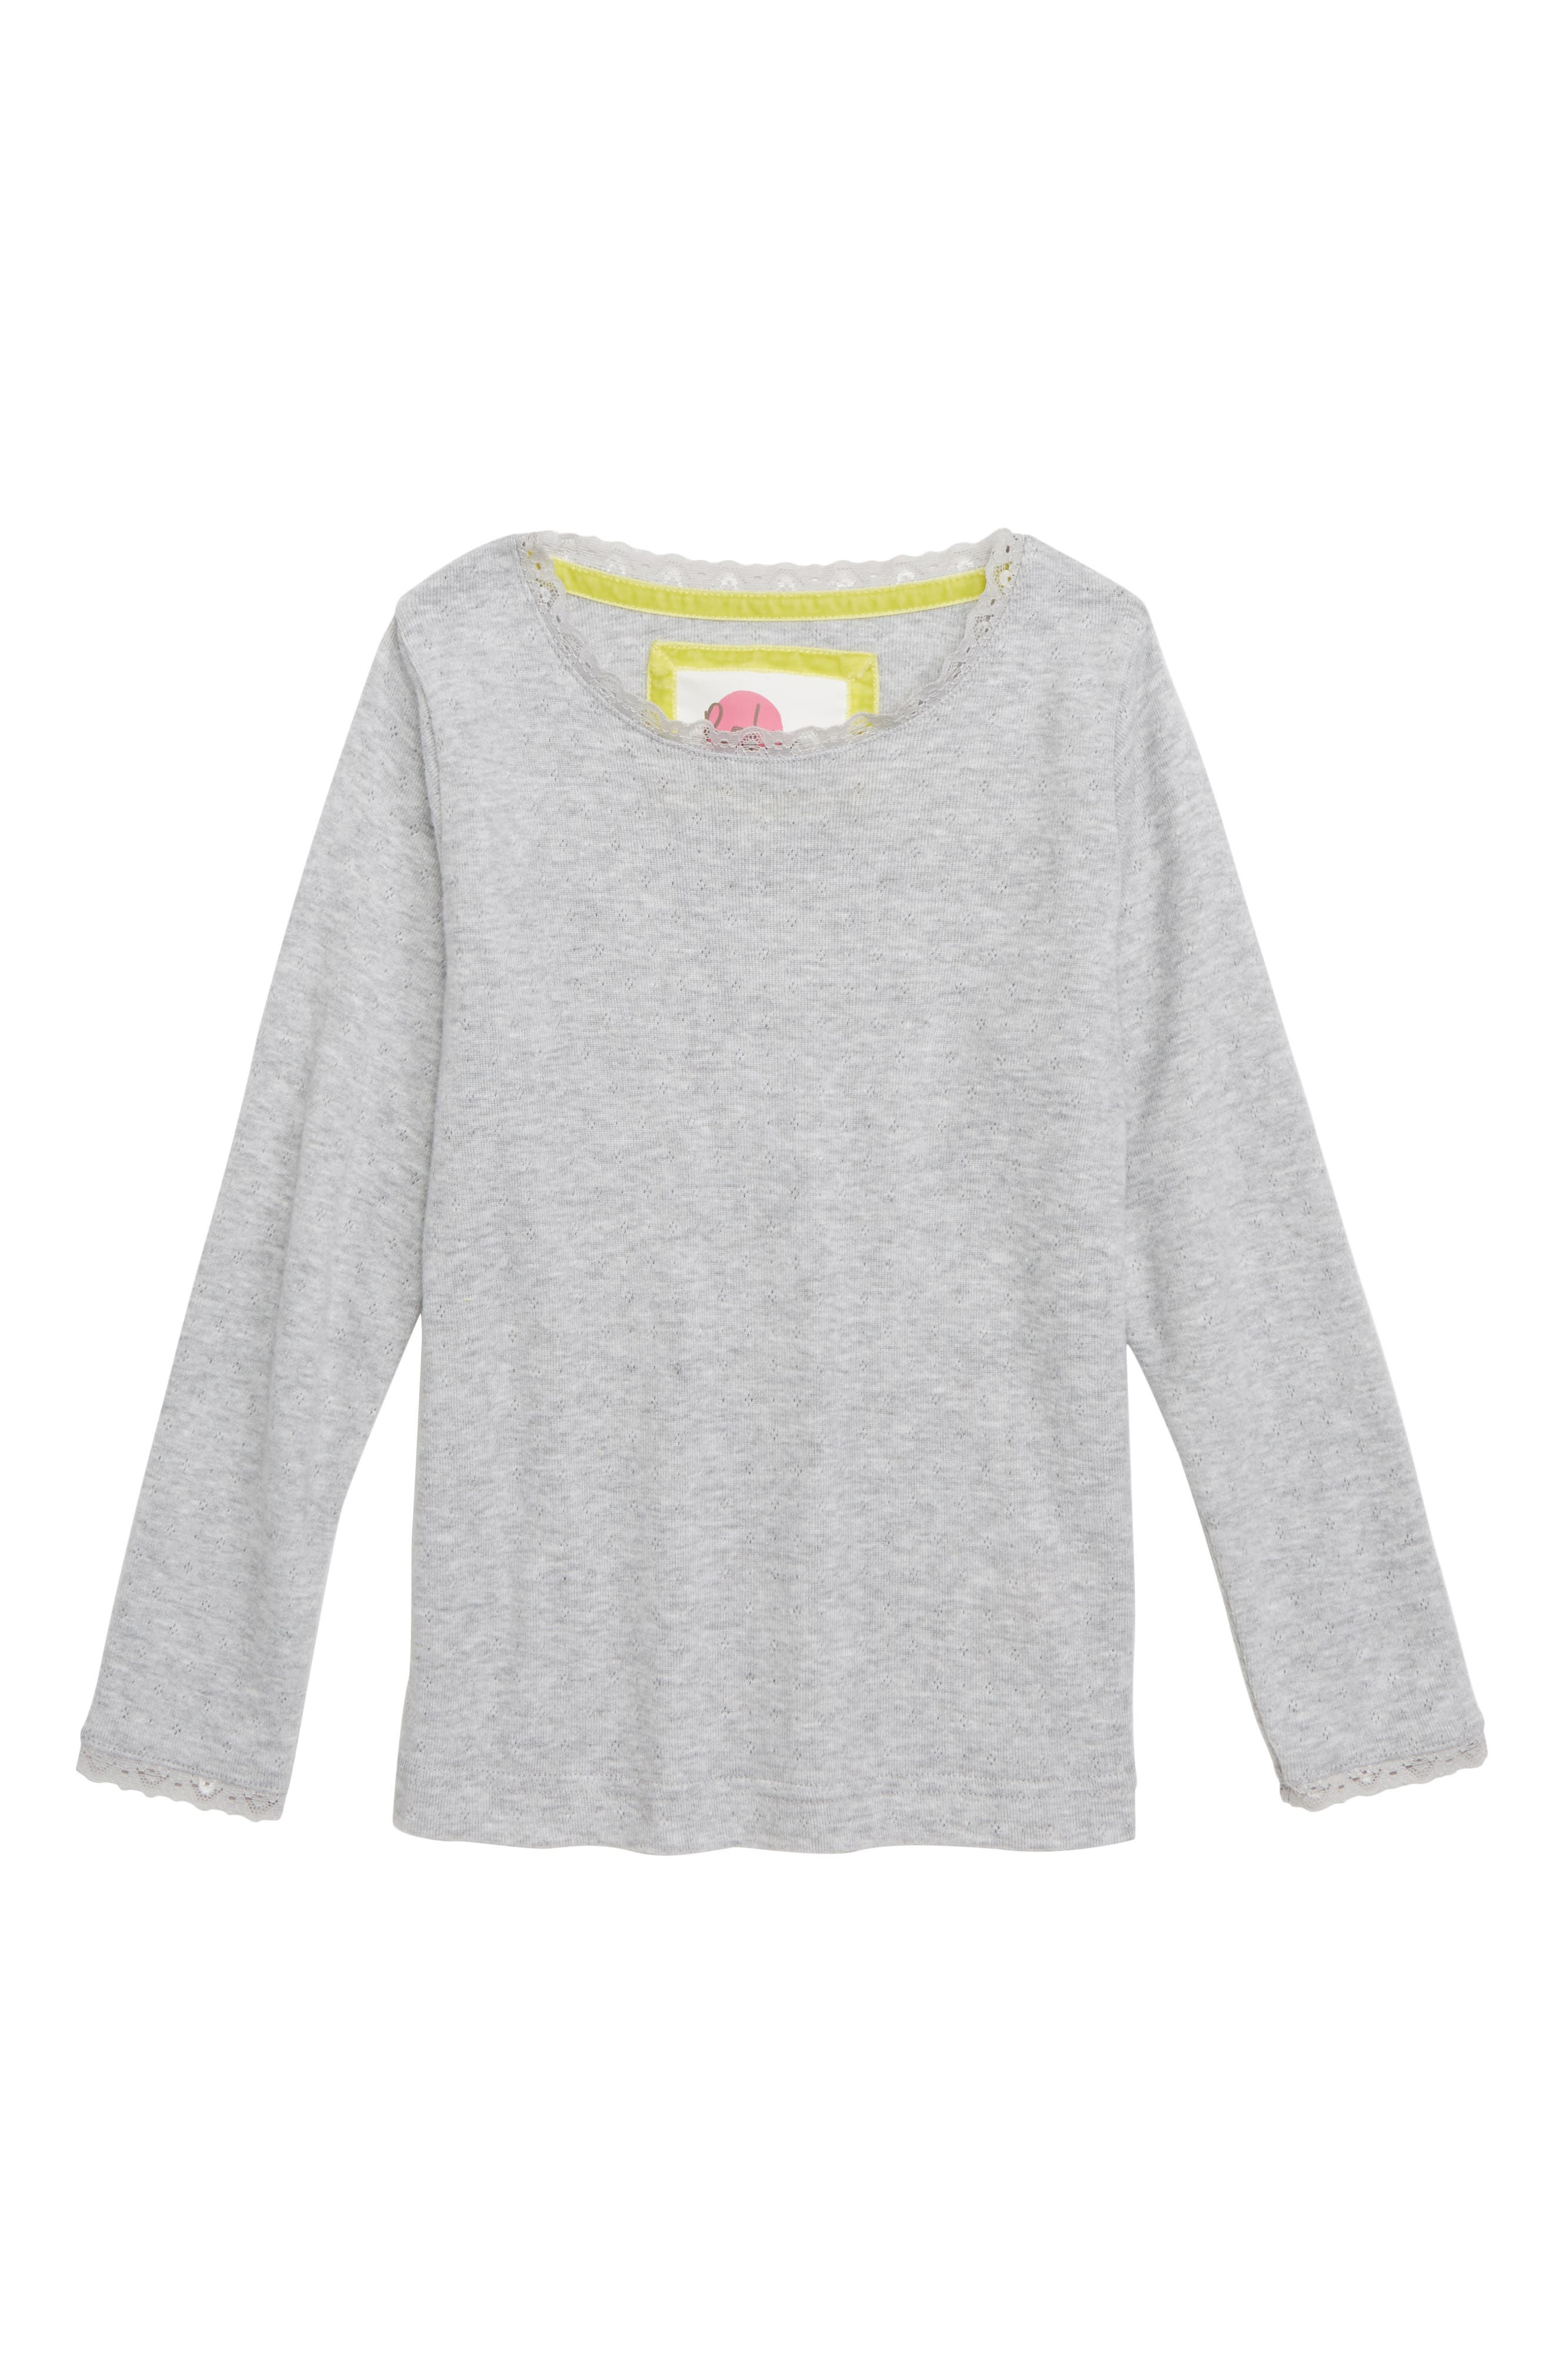 Pointelle Tee,                             Main thumbnail 1, color,                             GREY MARL